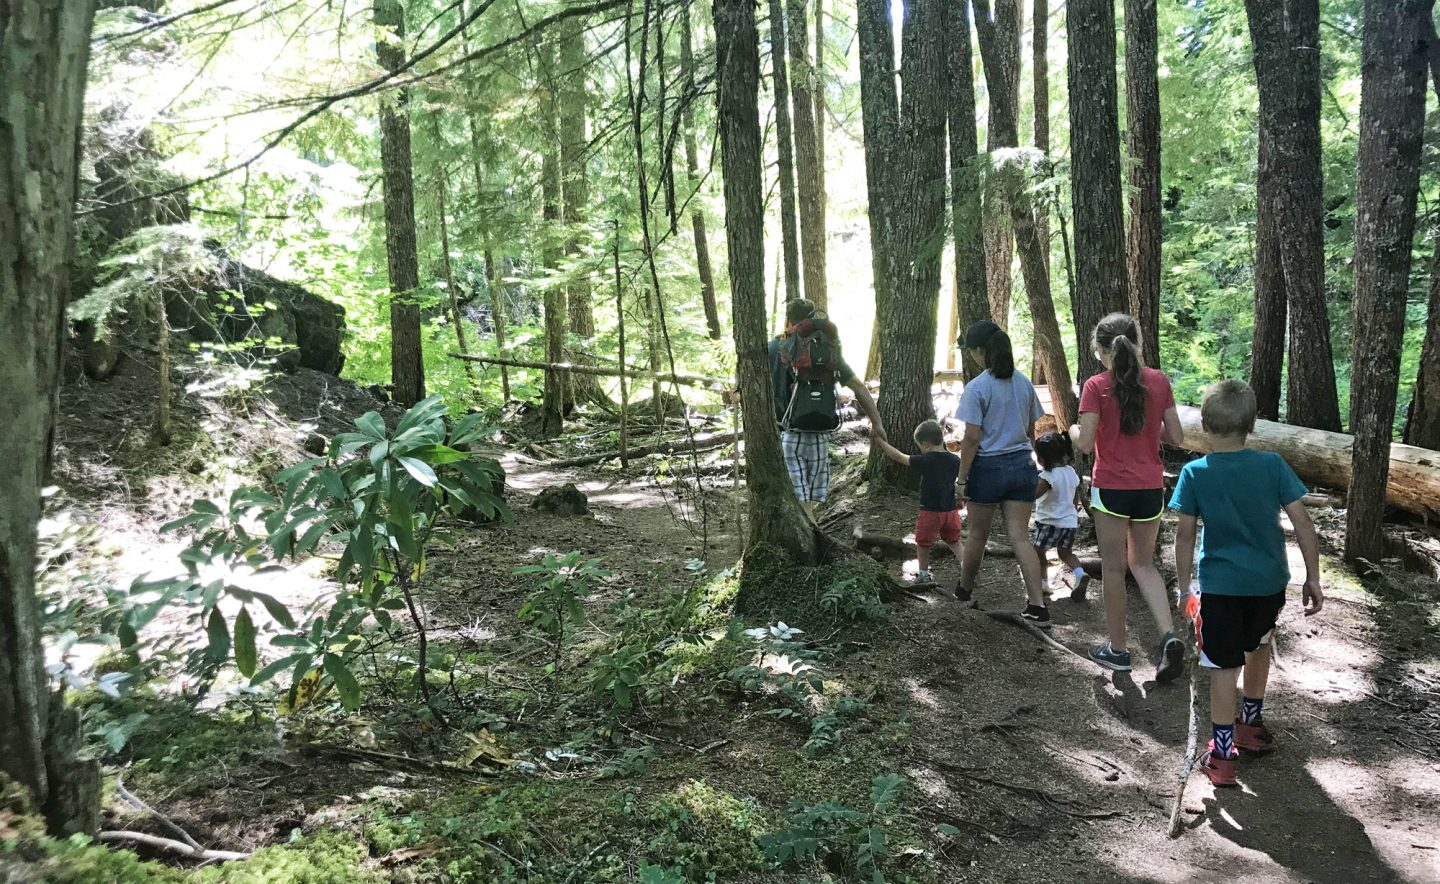 The trail at the start of Proxy Falls is easy and wide, with large Douglas fir trees overhead. It's a waterfall hike for kids near eugene